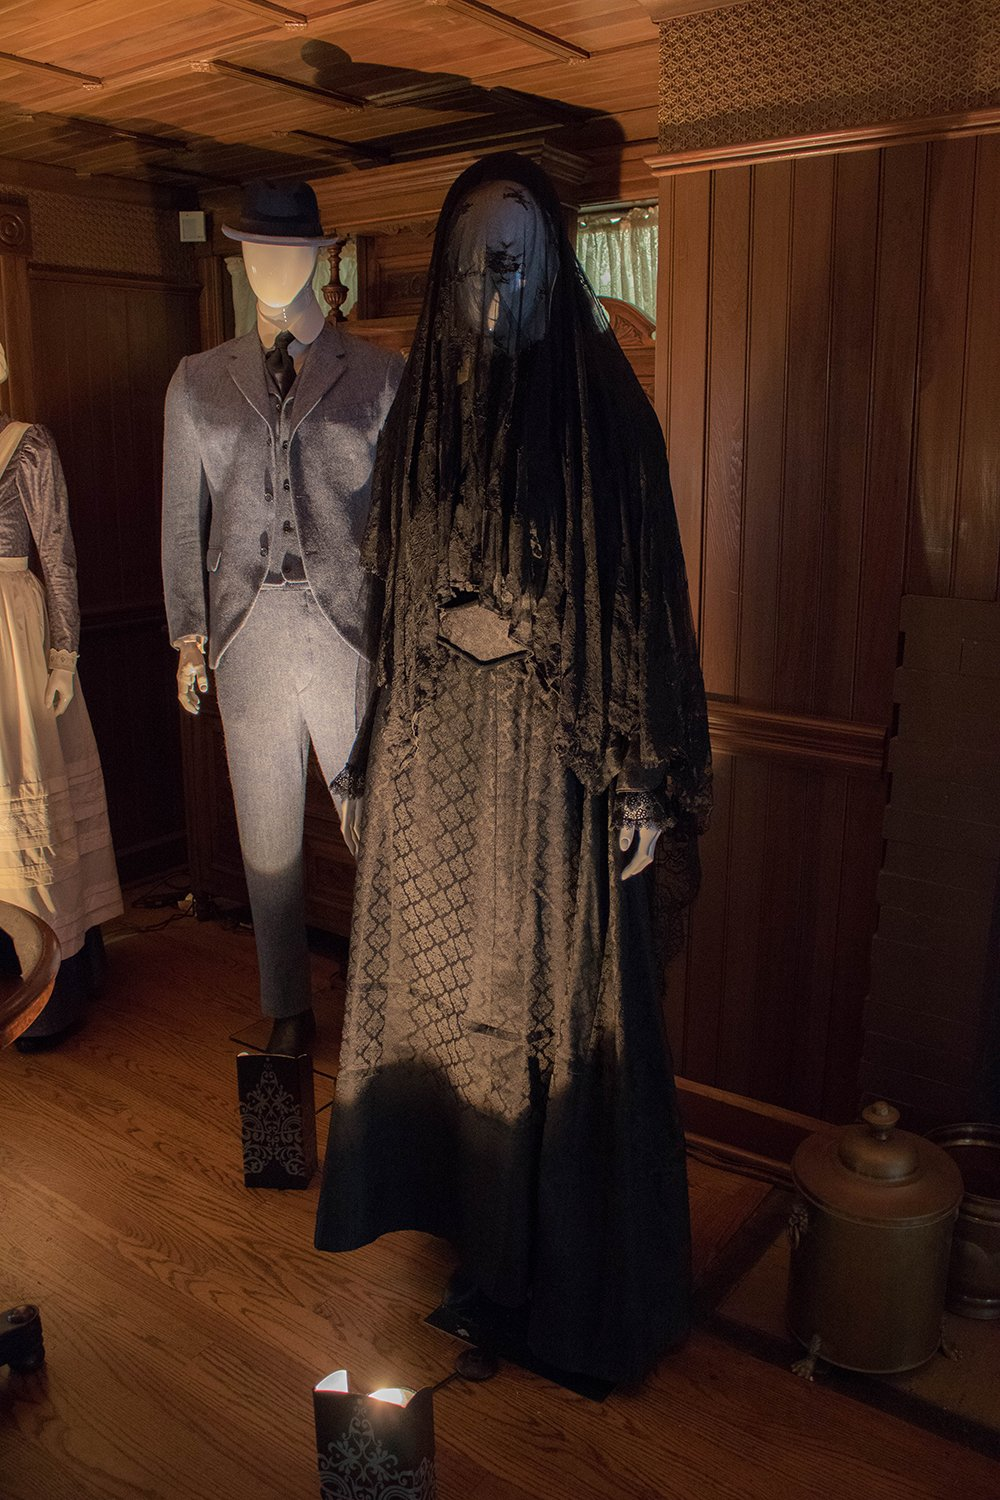 Costumes used in the Winchester Movie